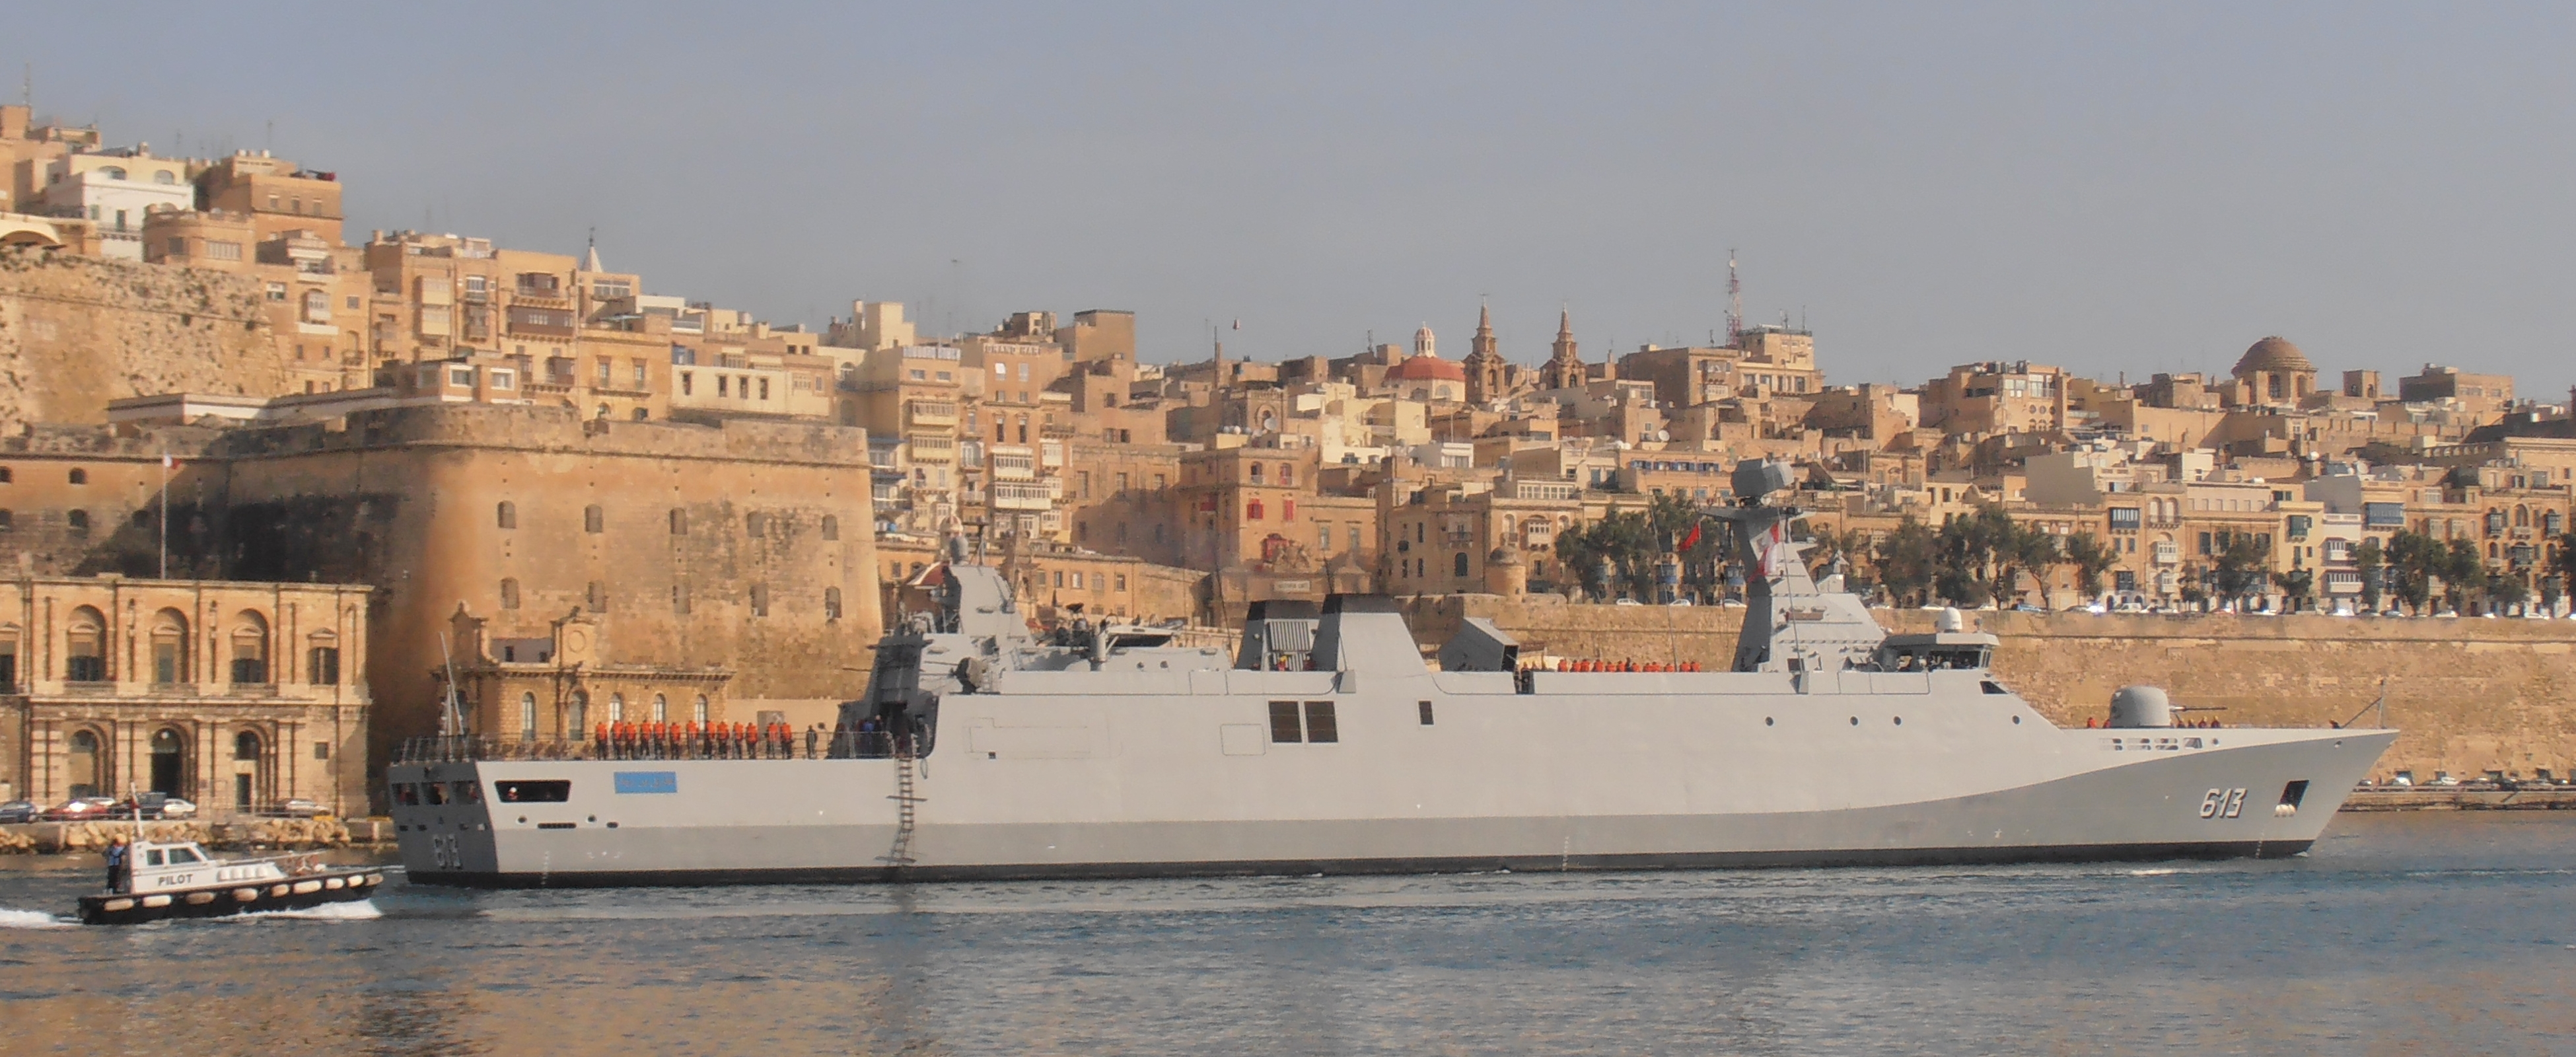 Royal Moroccan Navy Sigma class frigates / Frégates marocaines multimissions Sigma - Page 20 2232561